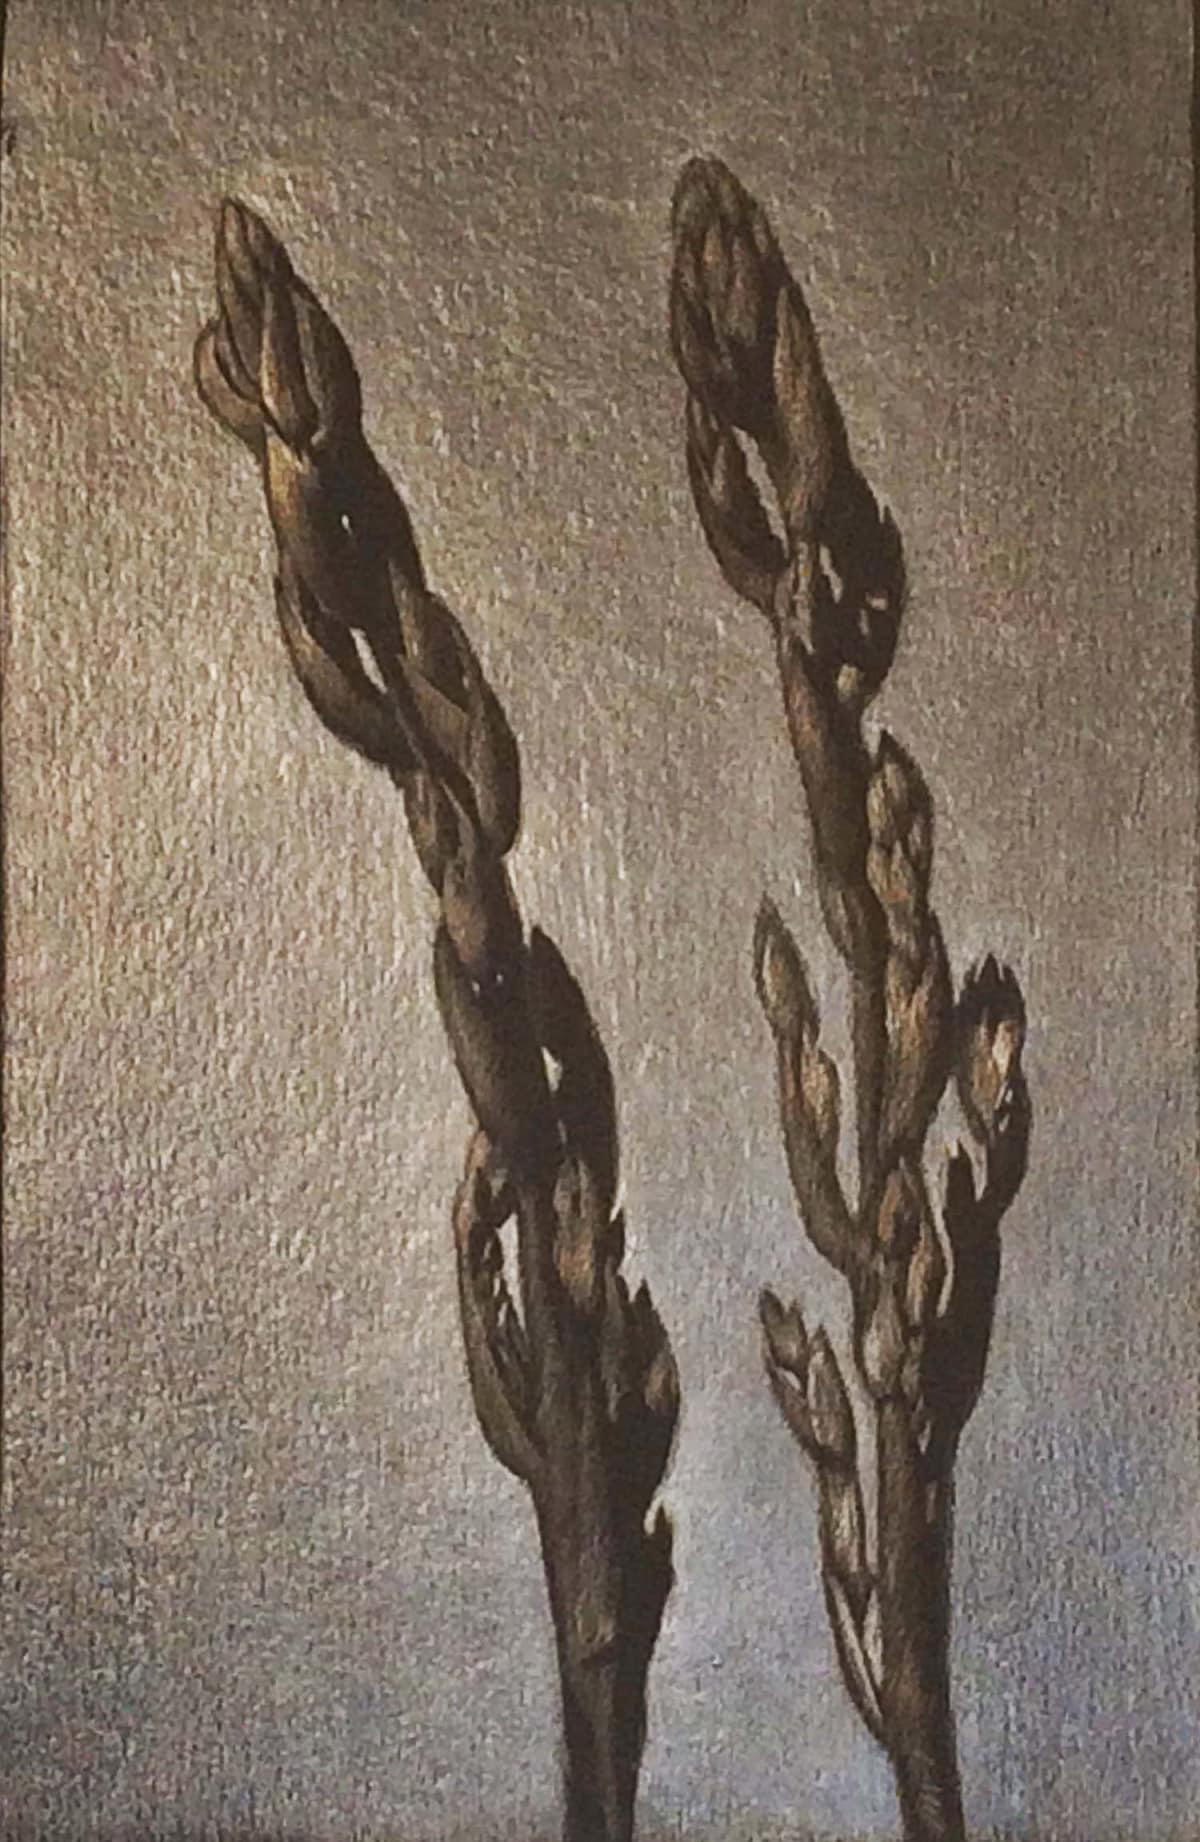 Marjorie Williams-Smith Asparagus Plants, 2016 Aluminumpoint, Silverpoint, and Copperpoint 5 7/8 x 3 7/8